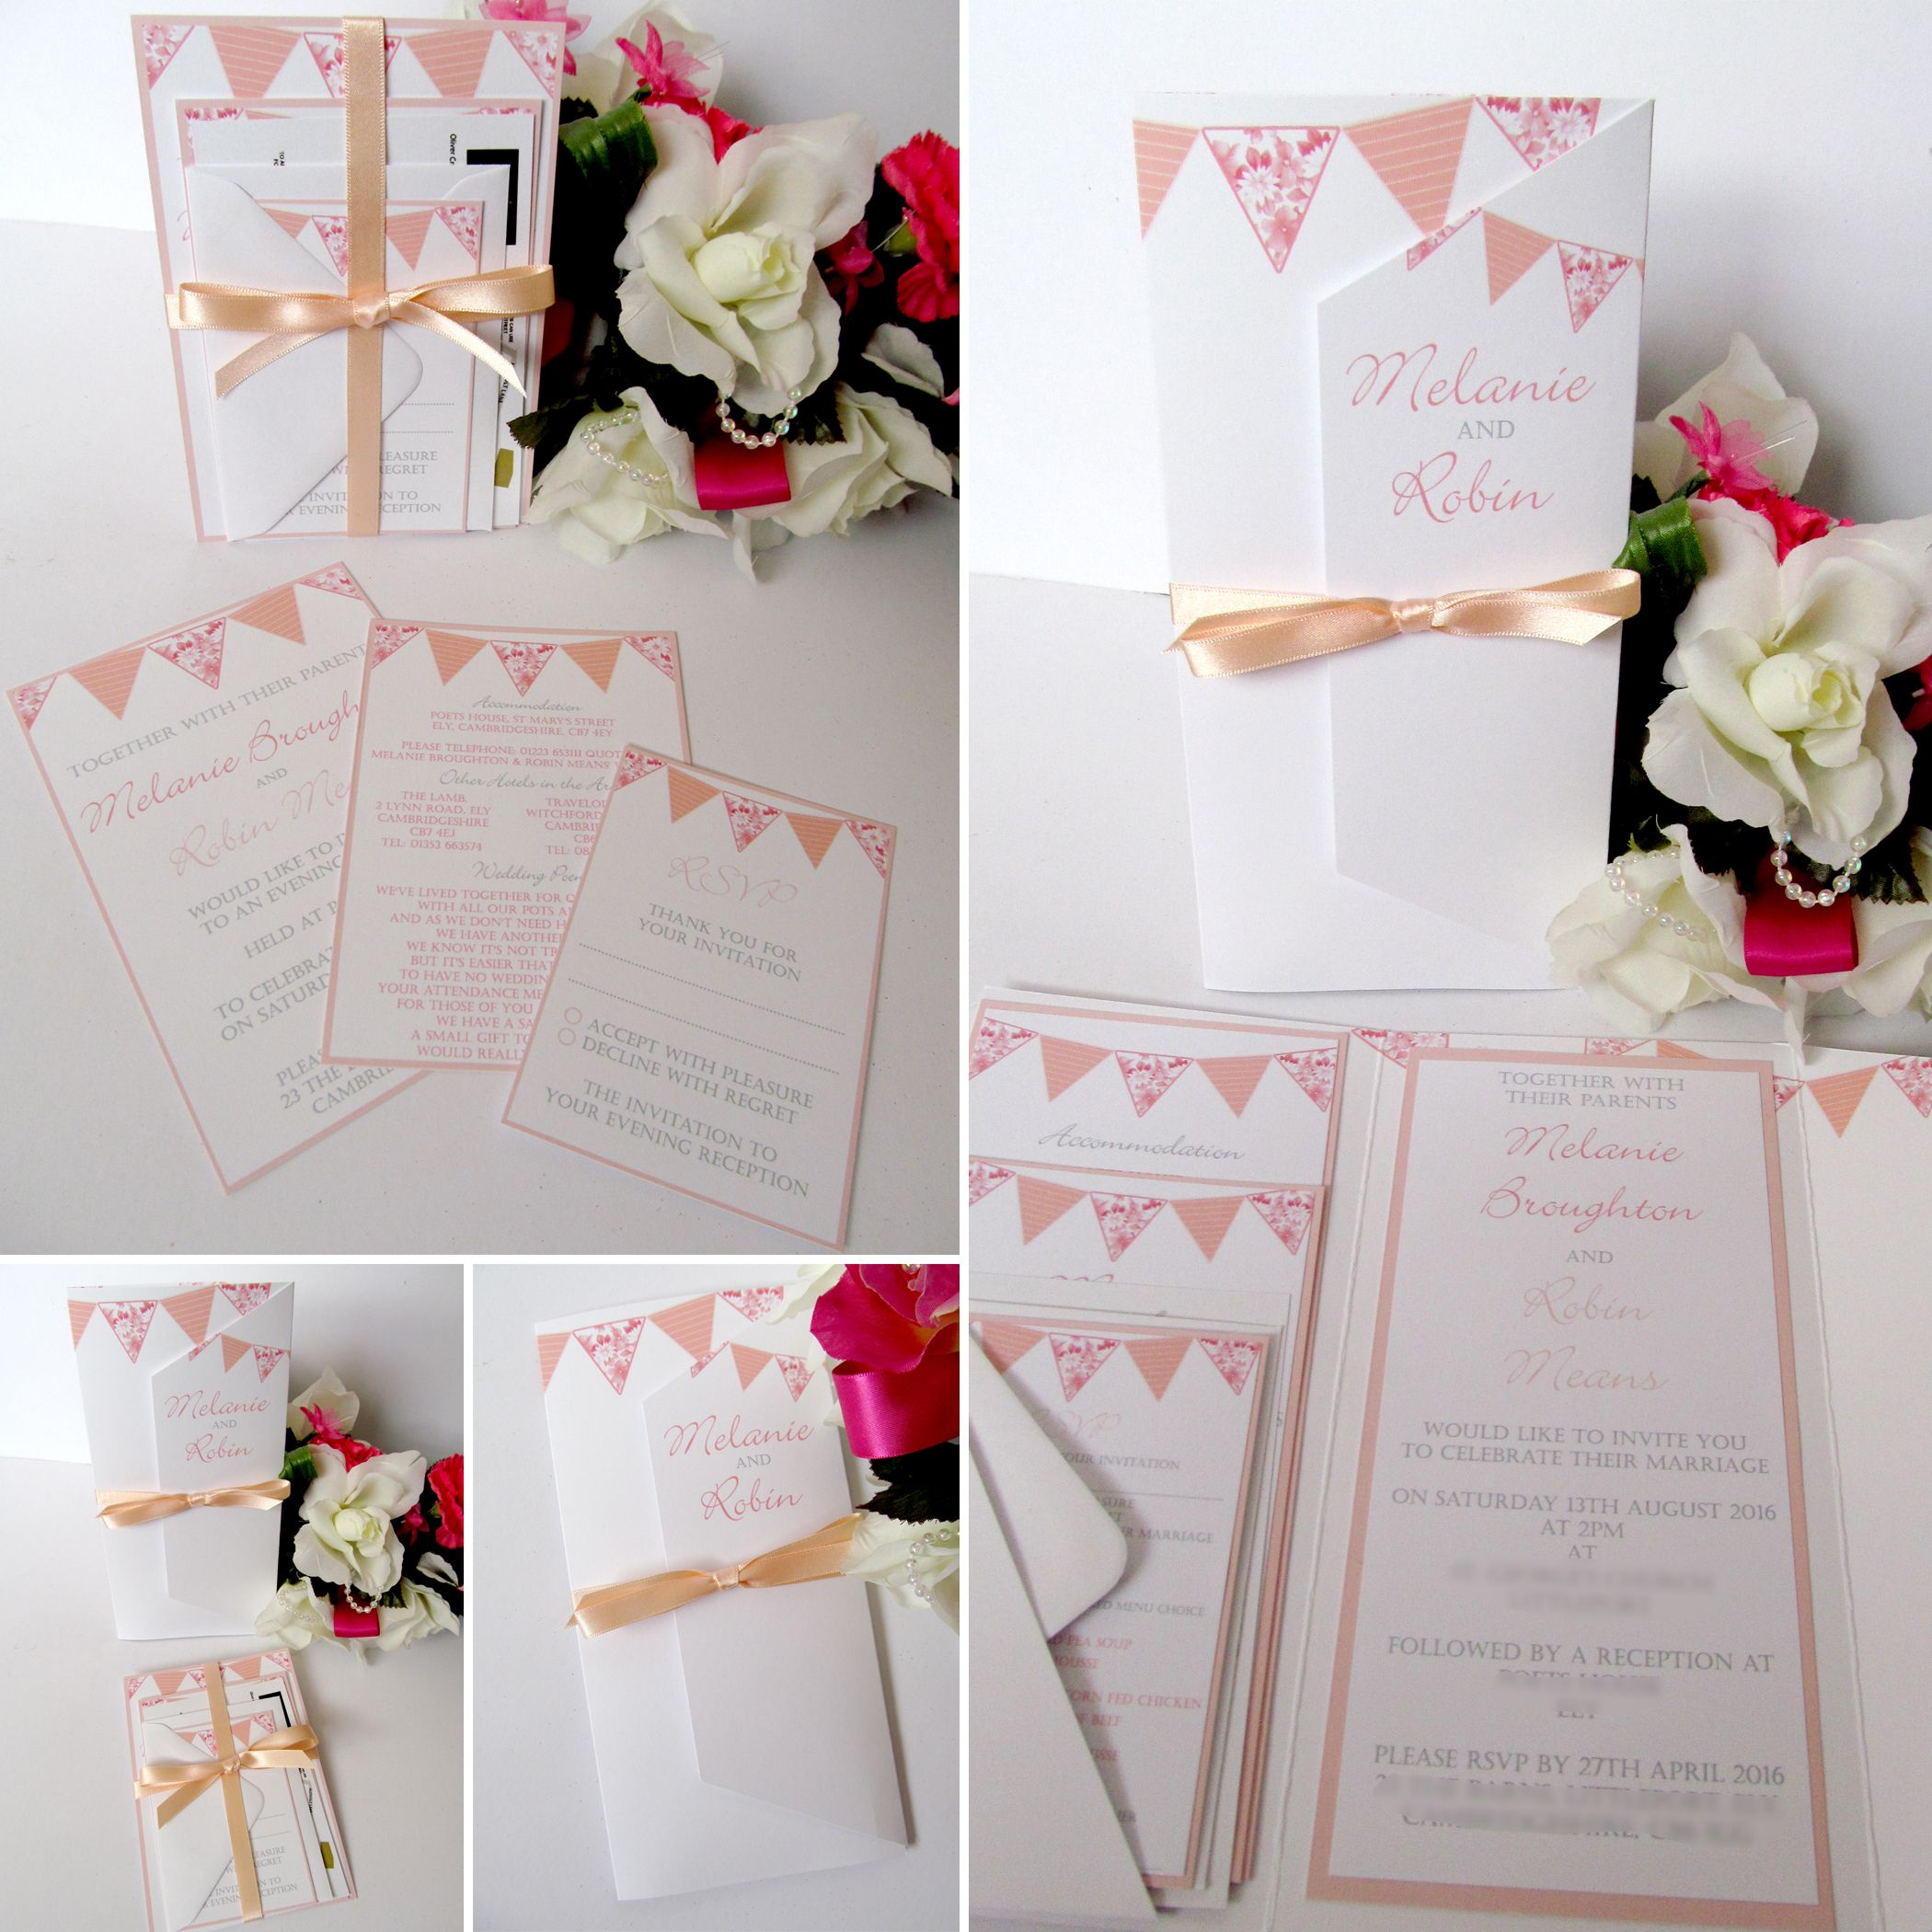 Wedding invitations and stationery from Yellow Blossom Designs Ltd ...